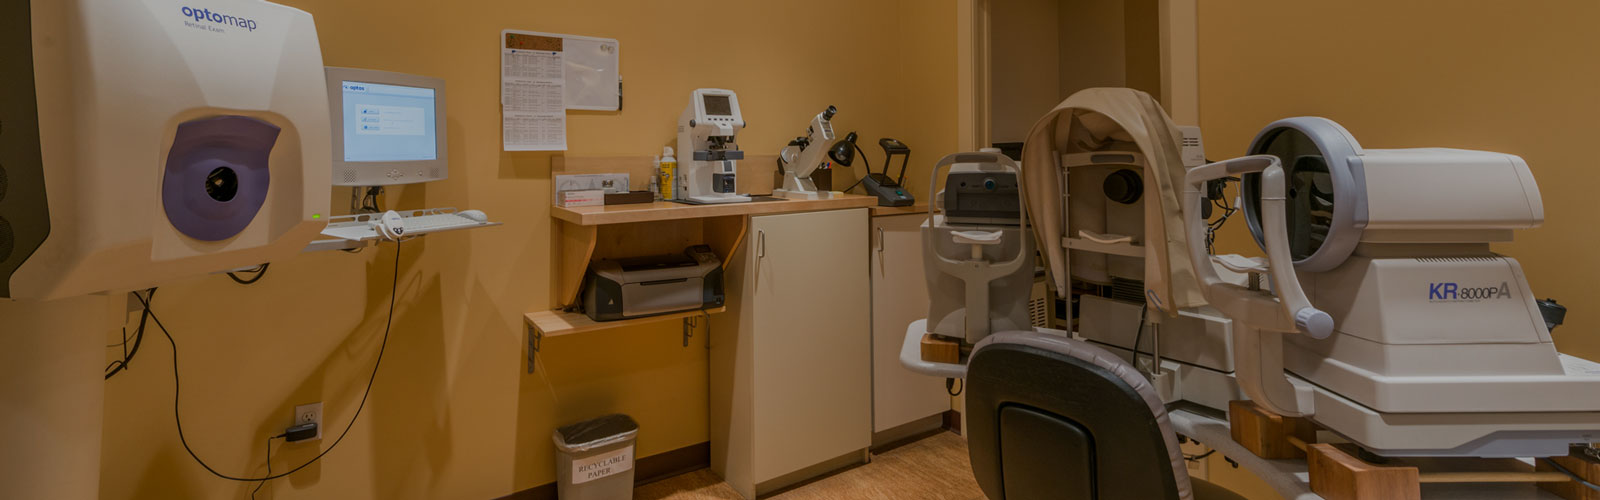 Kamloops Vision Family Clinic in Kamloops, BC